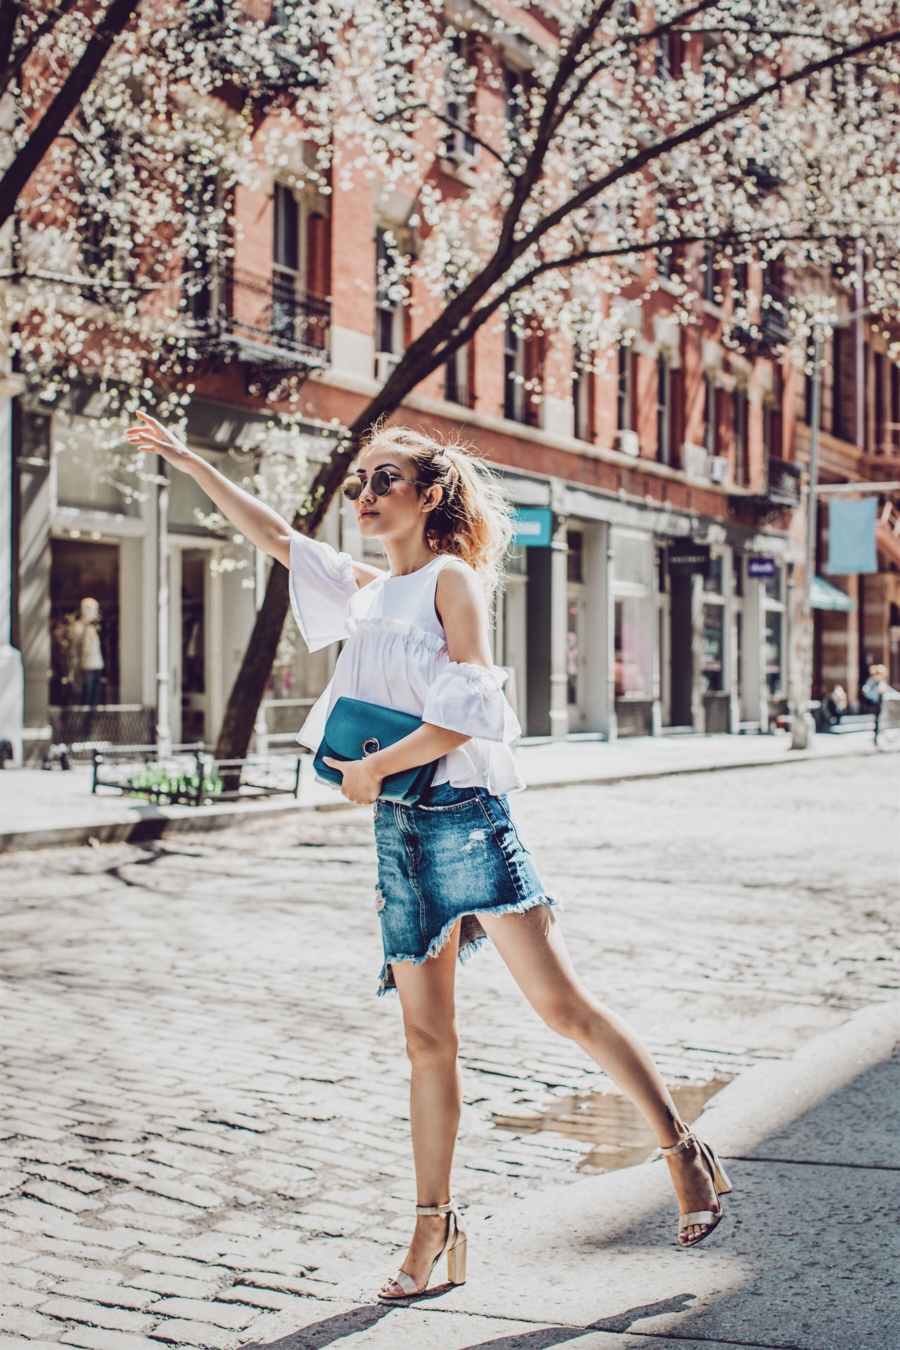 All The Frills - Instagram Outfits Round Up: Spring to Summer // NotJessFashion.com